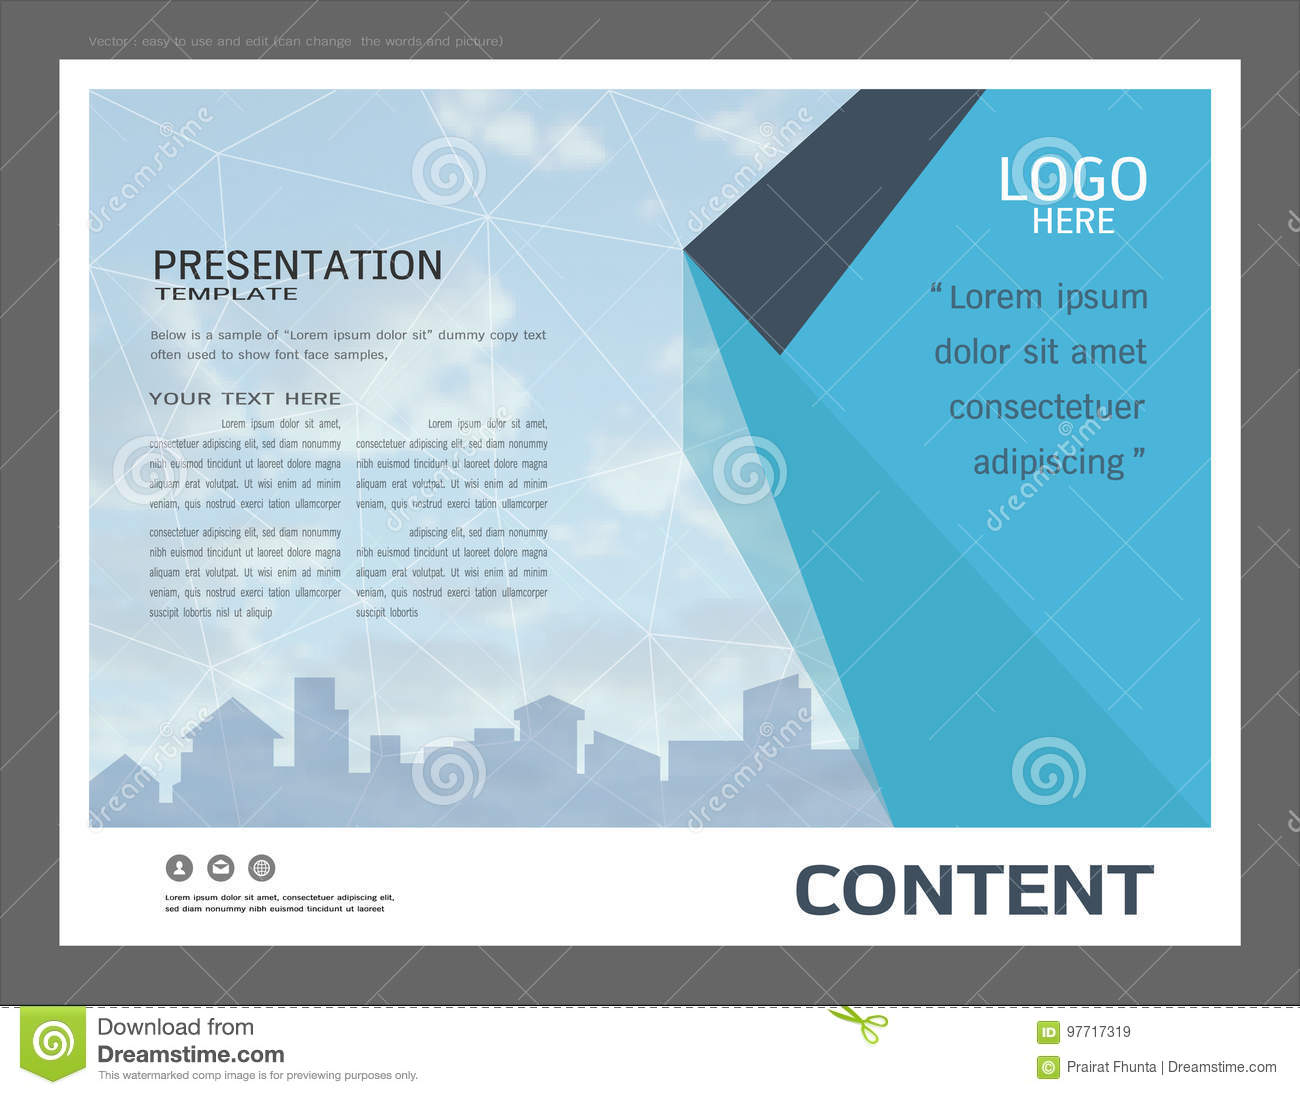 Presentation layout design for business cover page template stock download presentation layout design for business cover page template stock vector illustration of graphic wajeb Choice Image